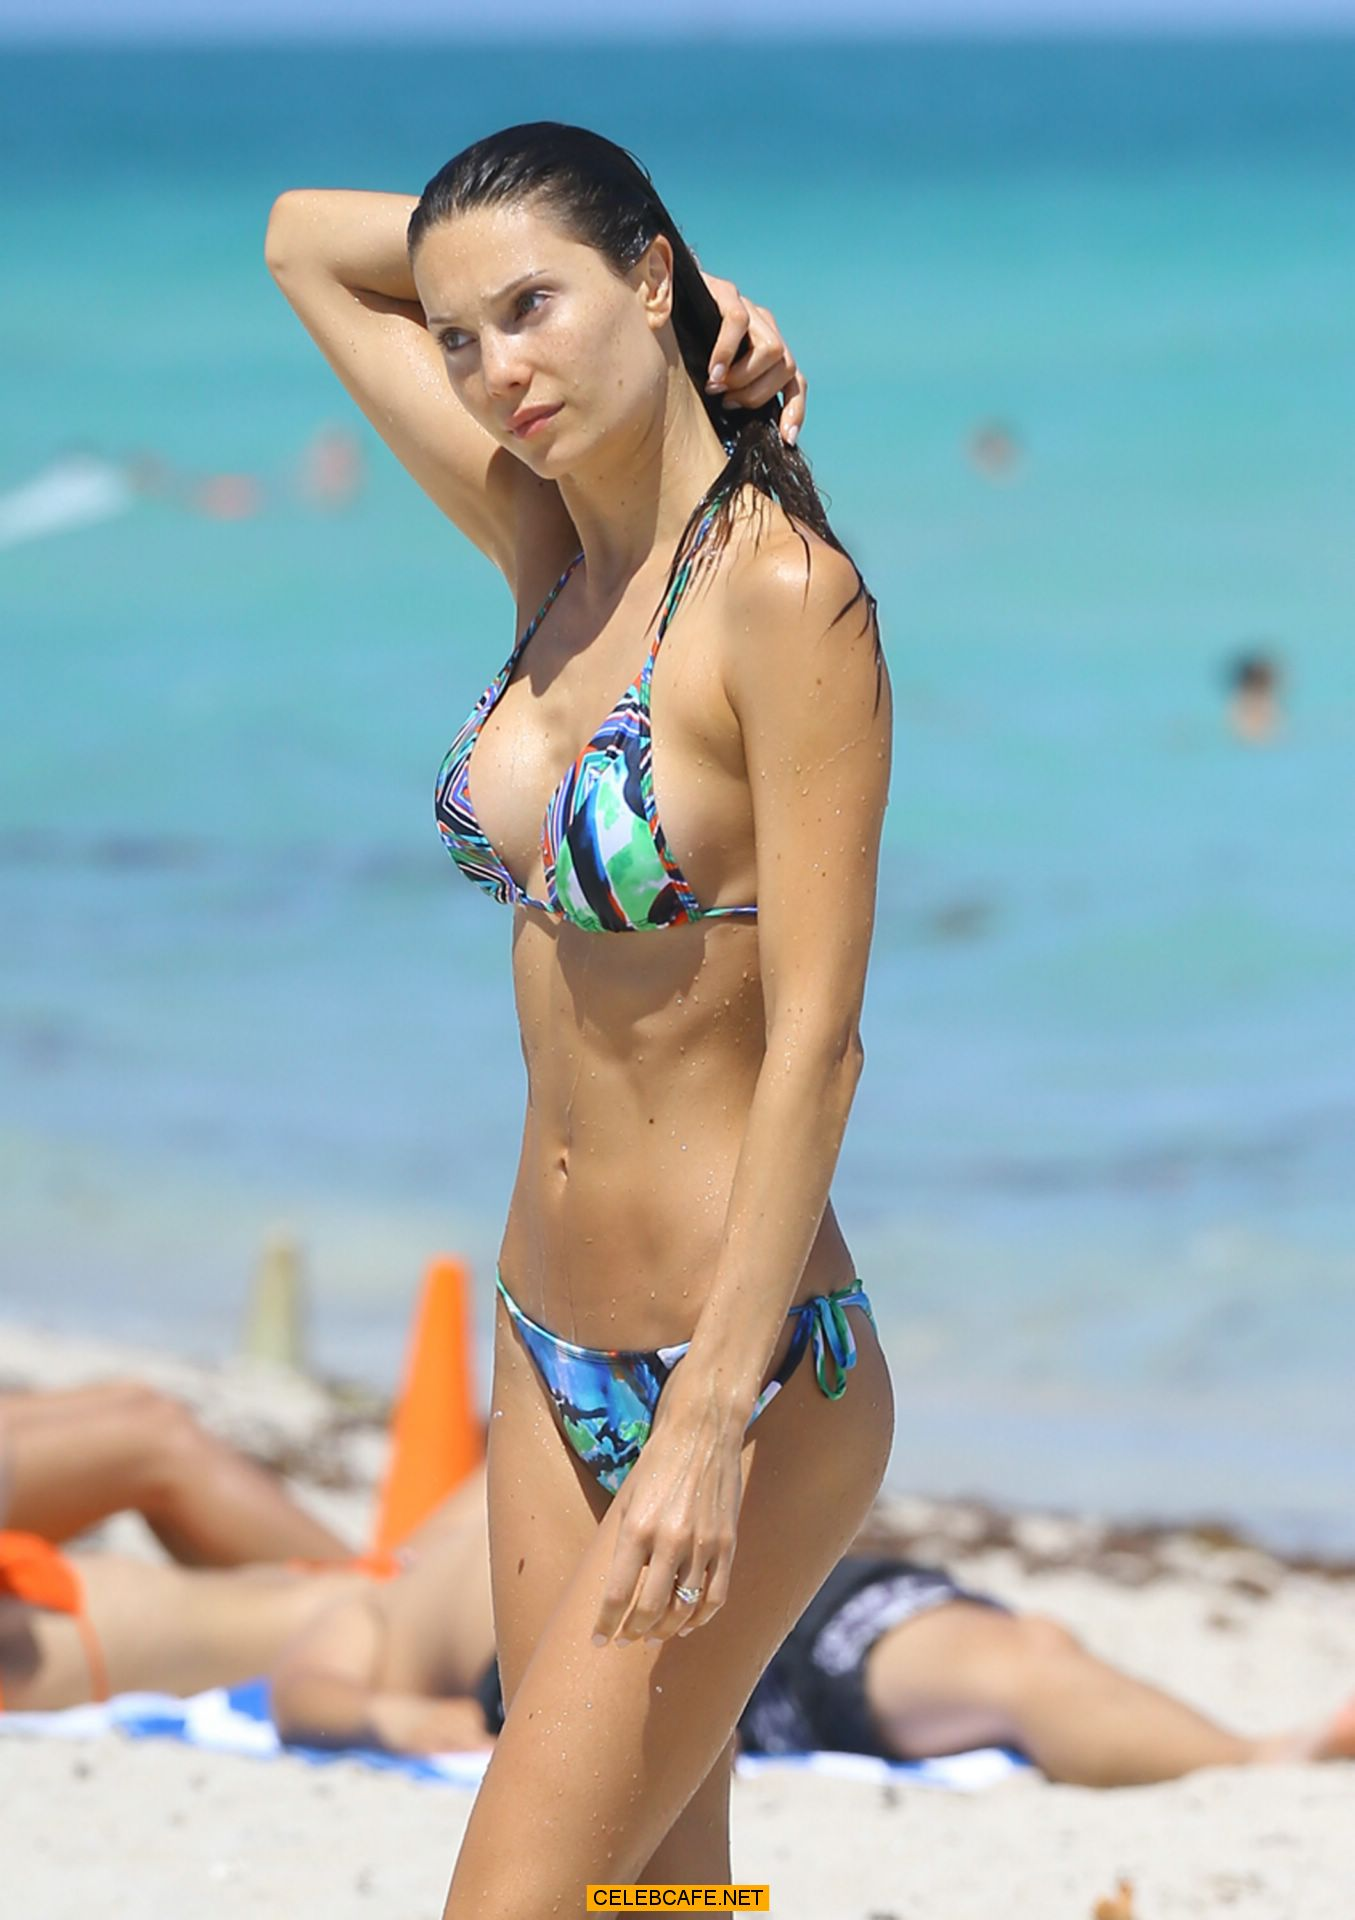 2014 julia pereira looking sexy in bikini in miami total 12 images